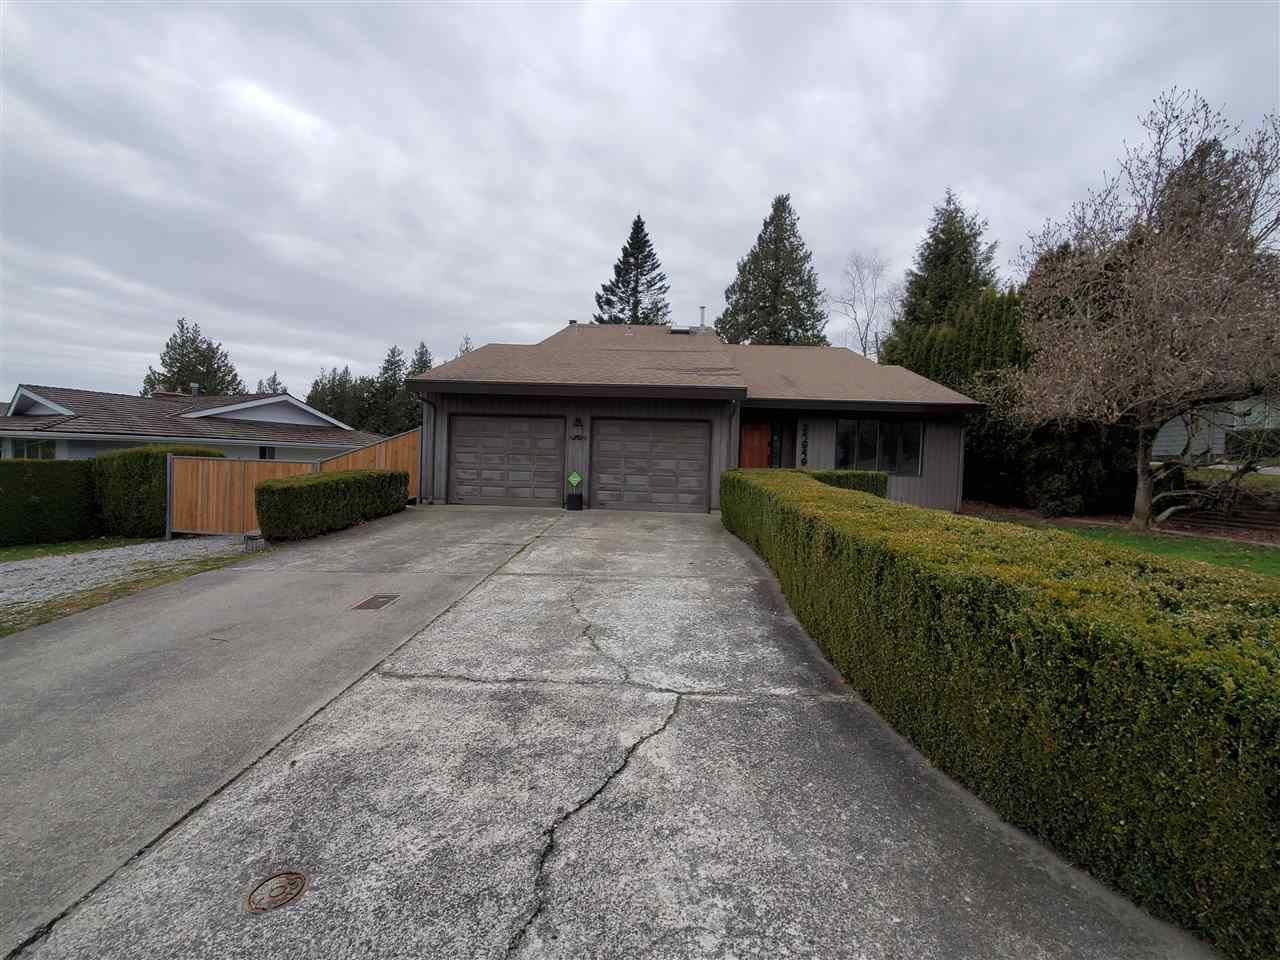 """Main Photo: 34949 EVERETT Drive in Abbotsford: Abbotsford East House for sale in """"Everett Estates"""" : MLS®# R2556370"""